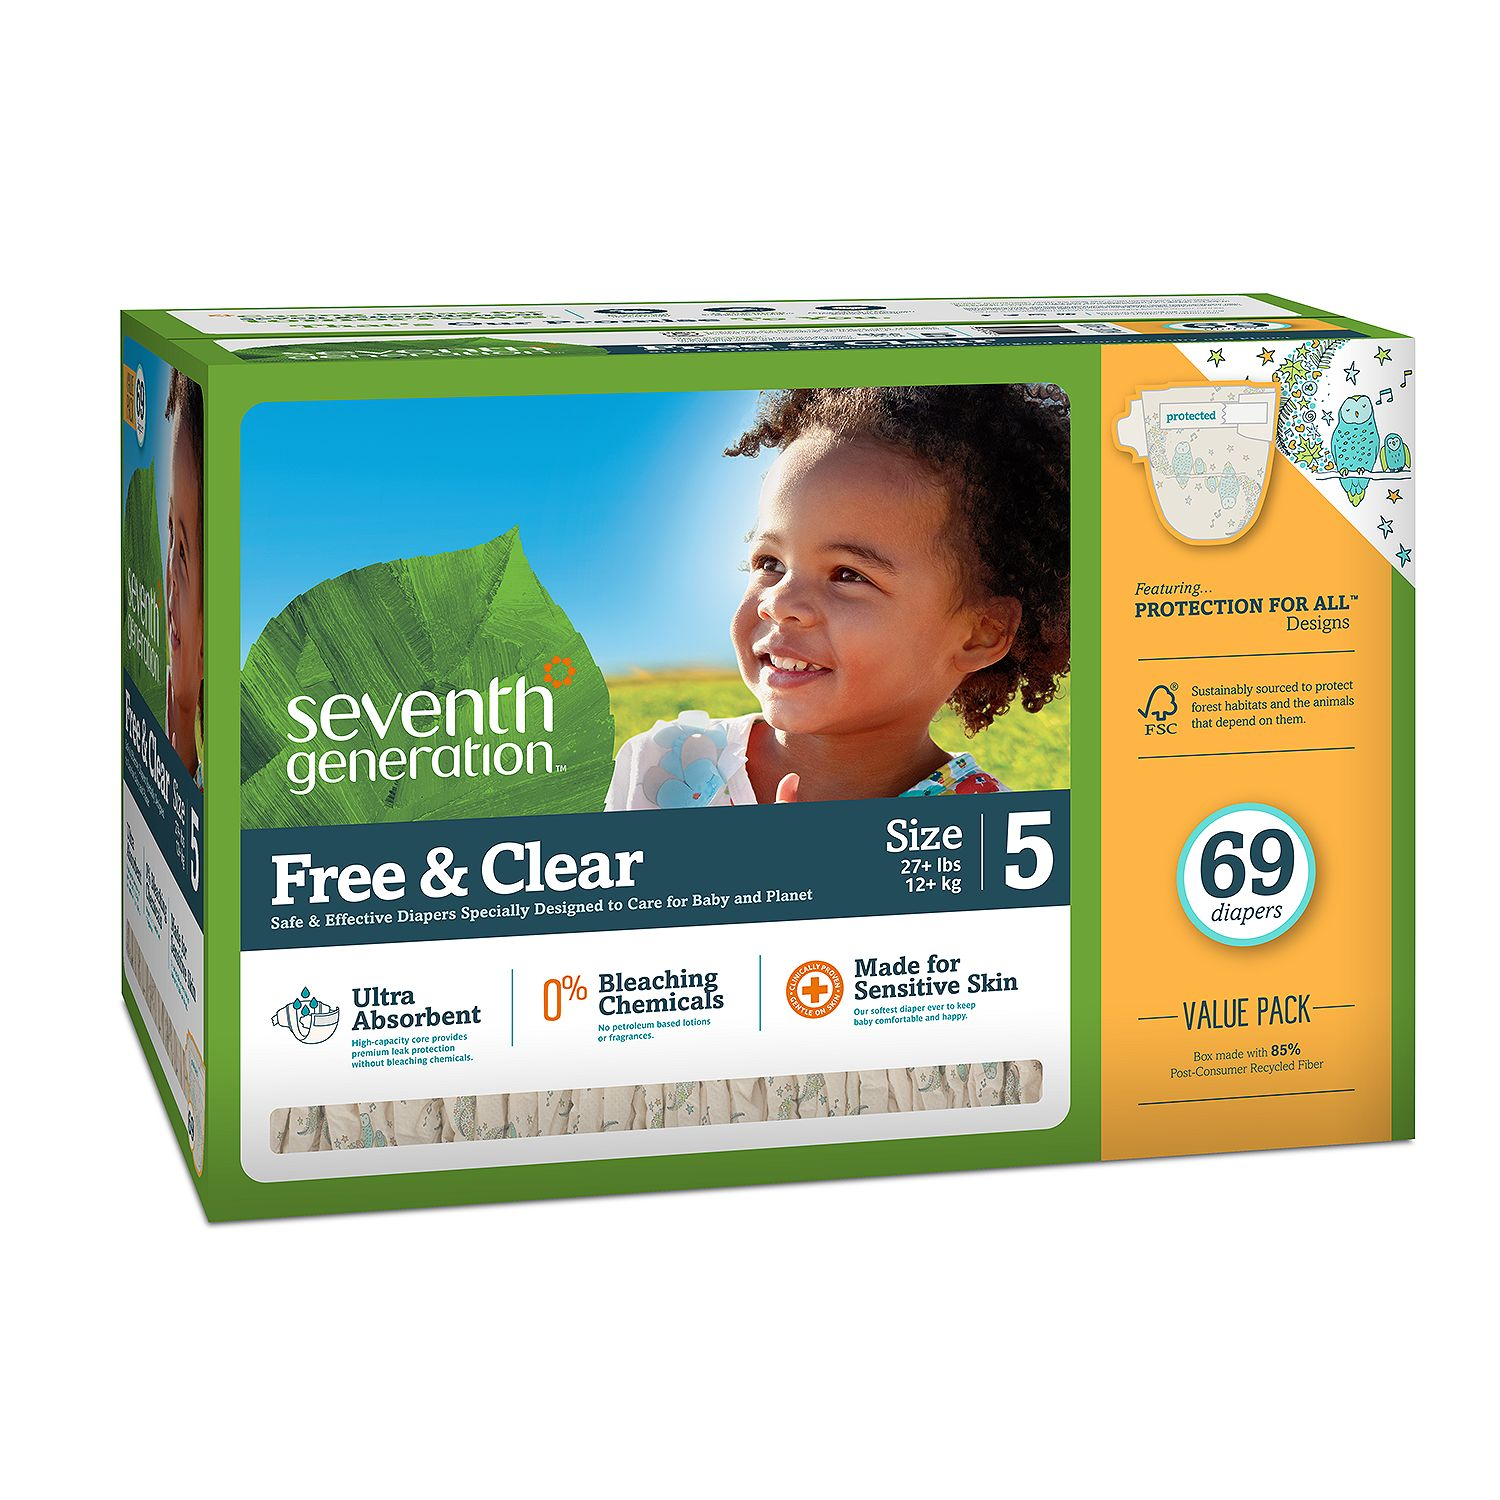 Seventh Generation Free & Clear Baby Diapers Size Size 5 - 69 ct. - Bulk Qty, Free Shipping - Comfortable, Soft, No leaking & Good nite Diapers